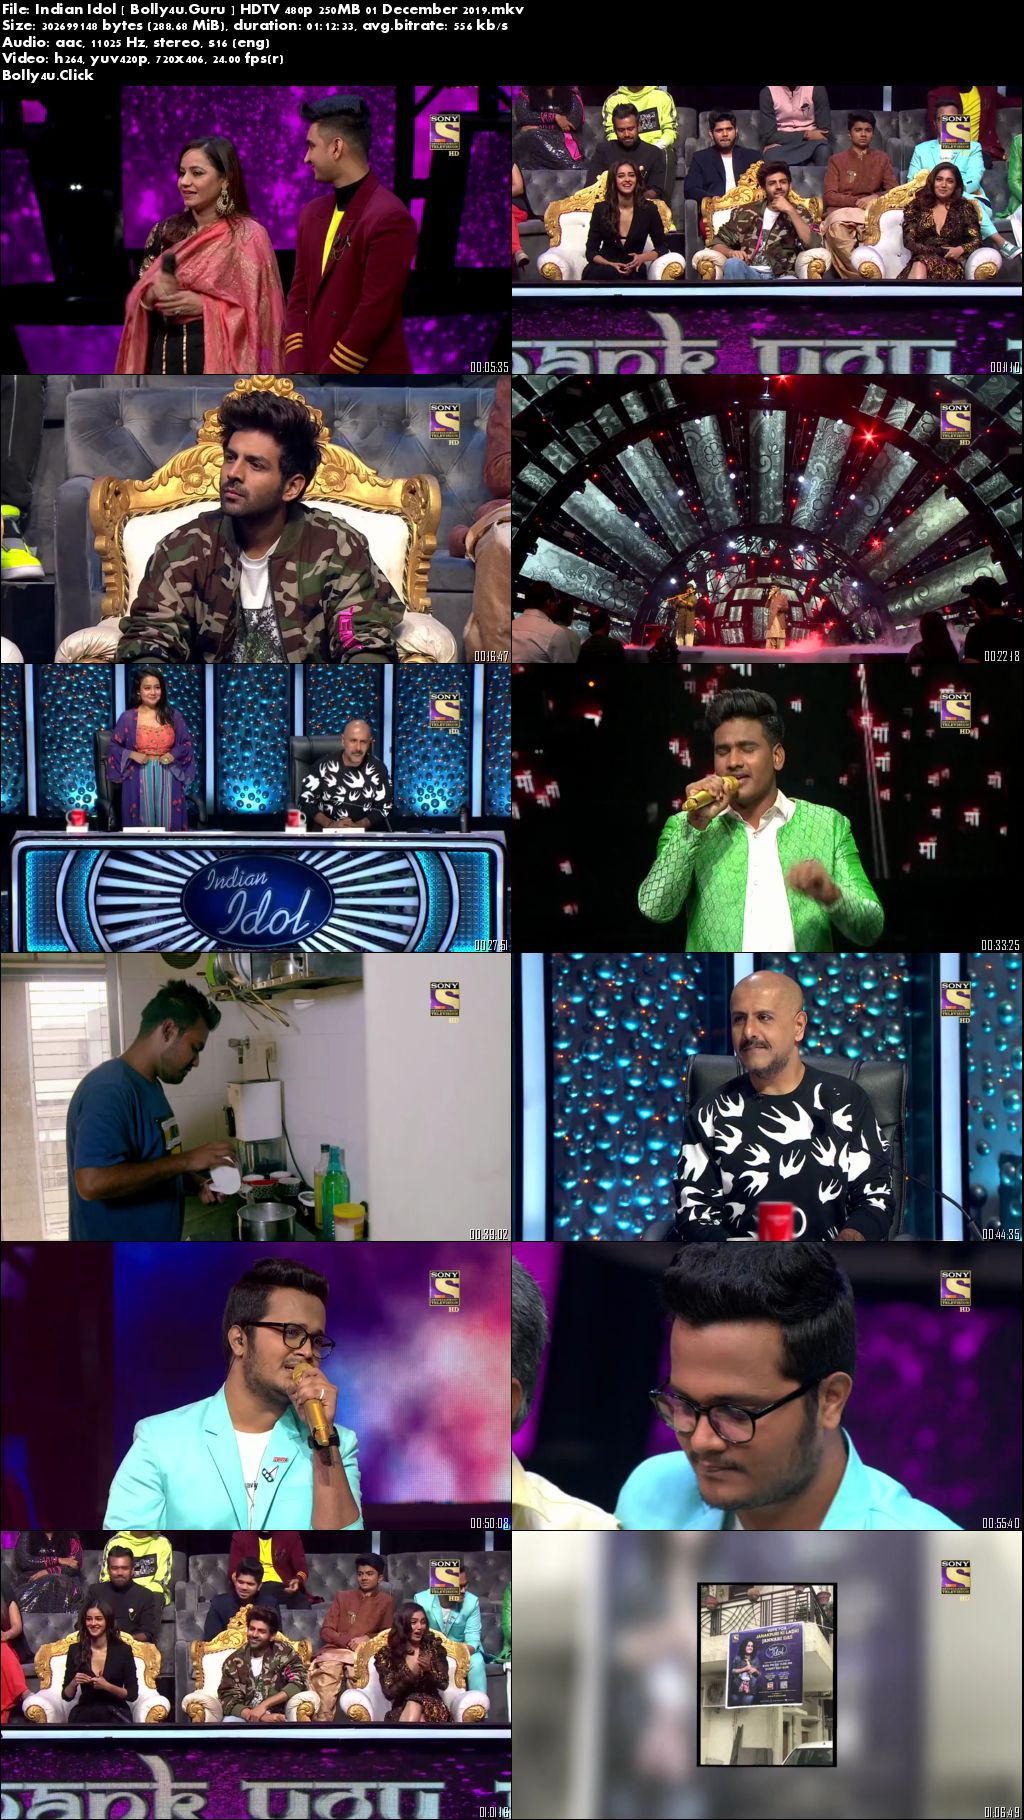 Indian Idol 2019 HDTV 480p 250MB 01 December 2019 Download